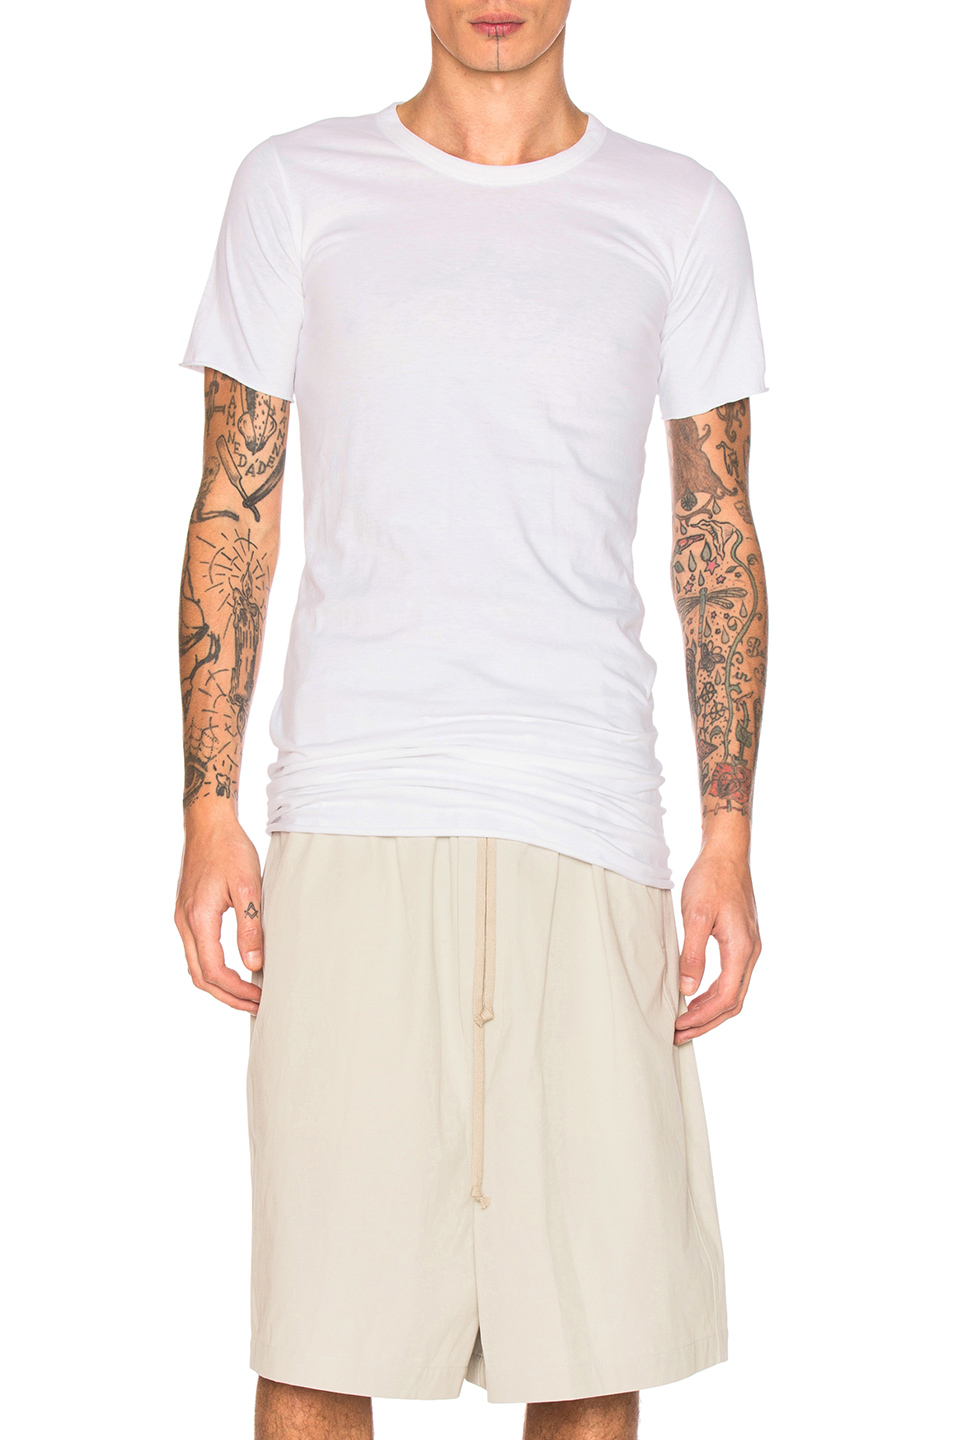 Rick Owens Basic Short Sleeve Tee in White